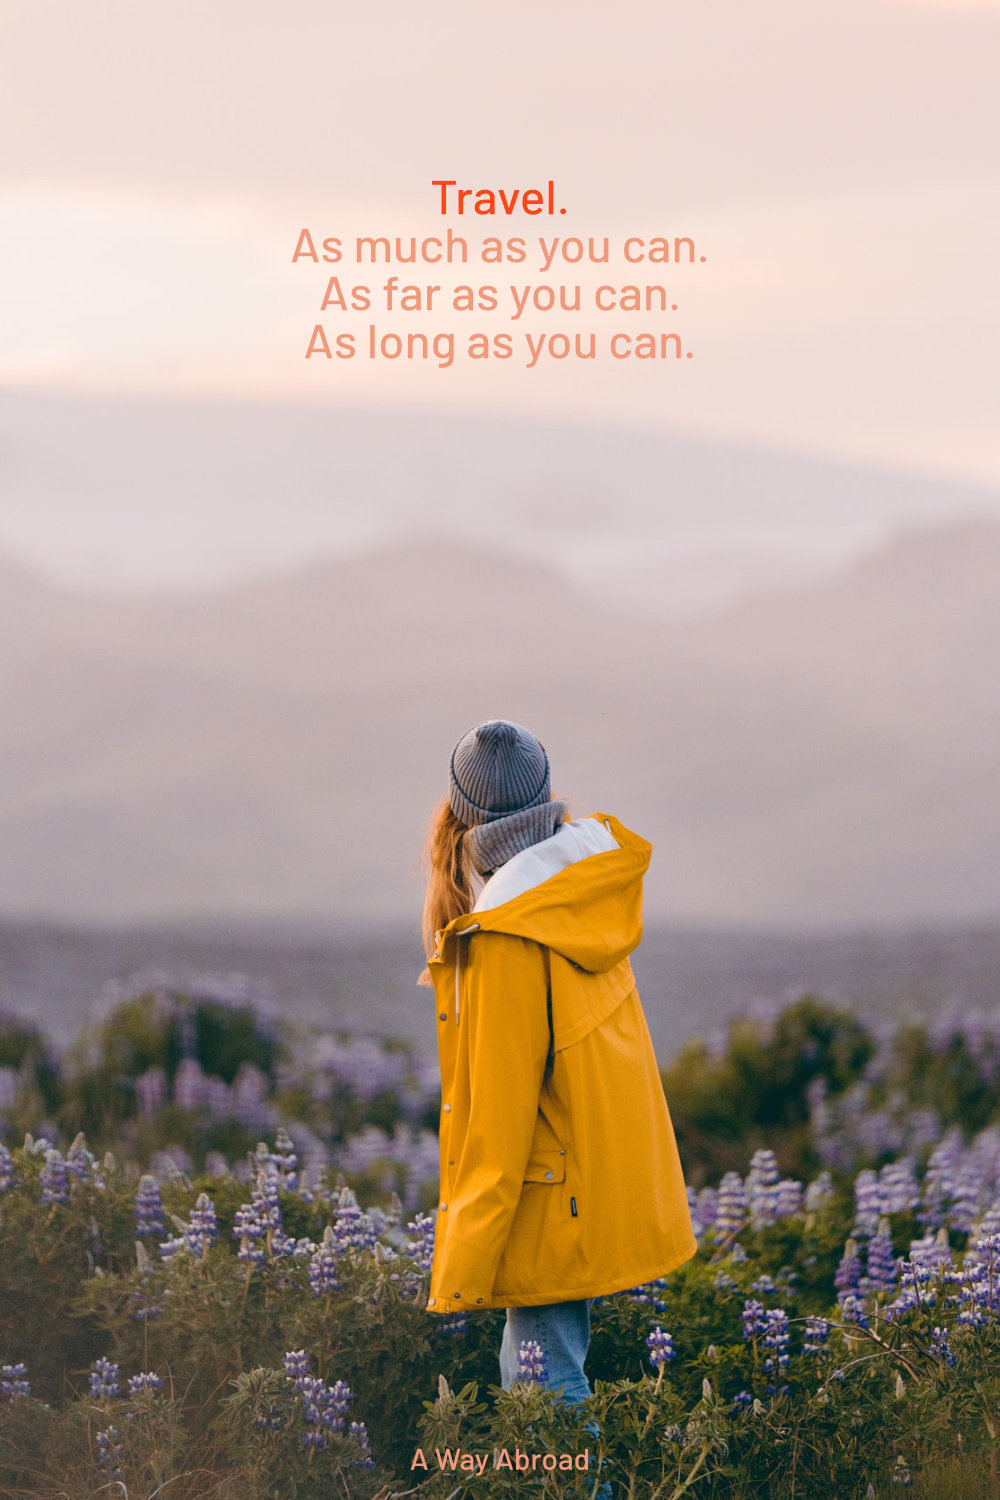 inspirational travel quote with a woman looking away at to the mountains